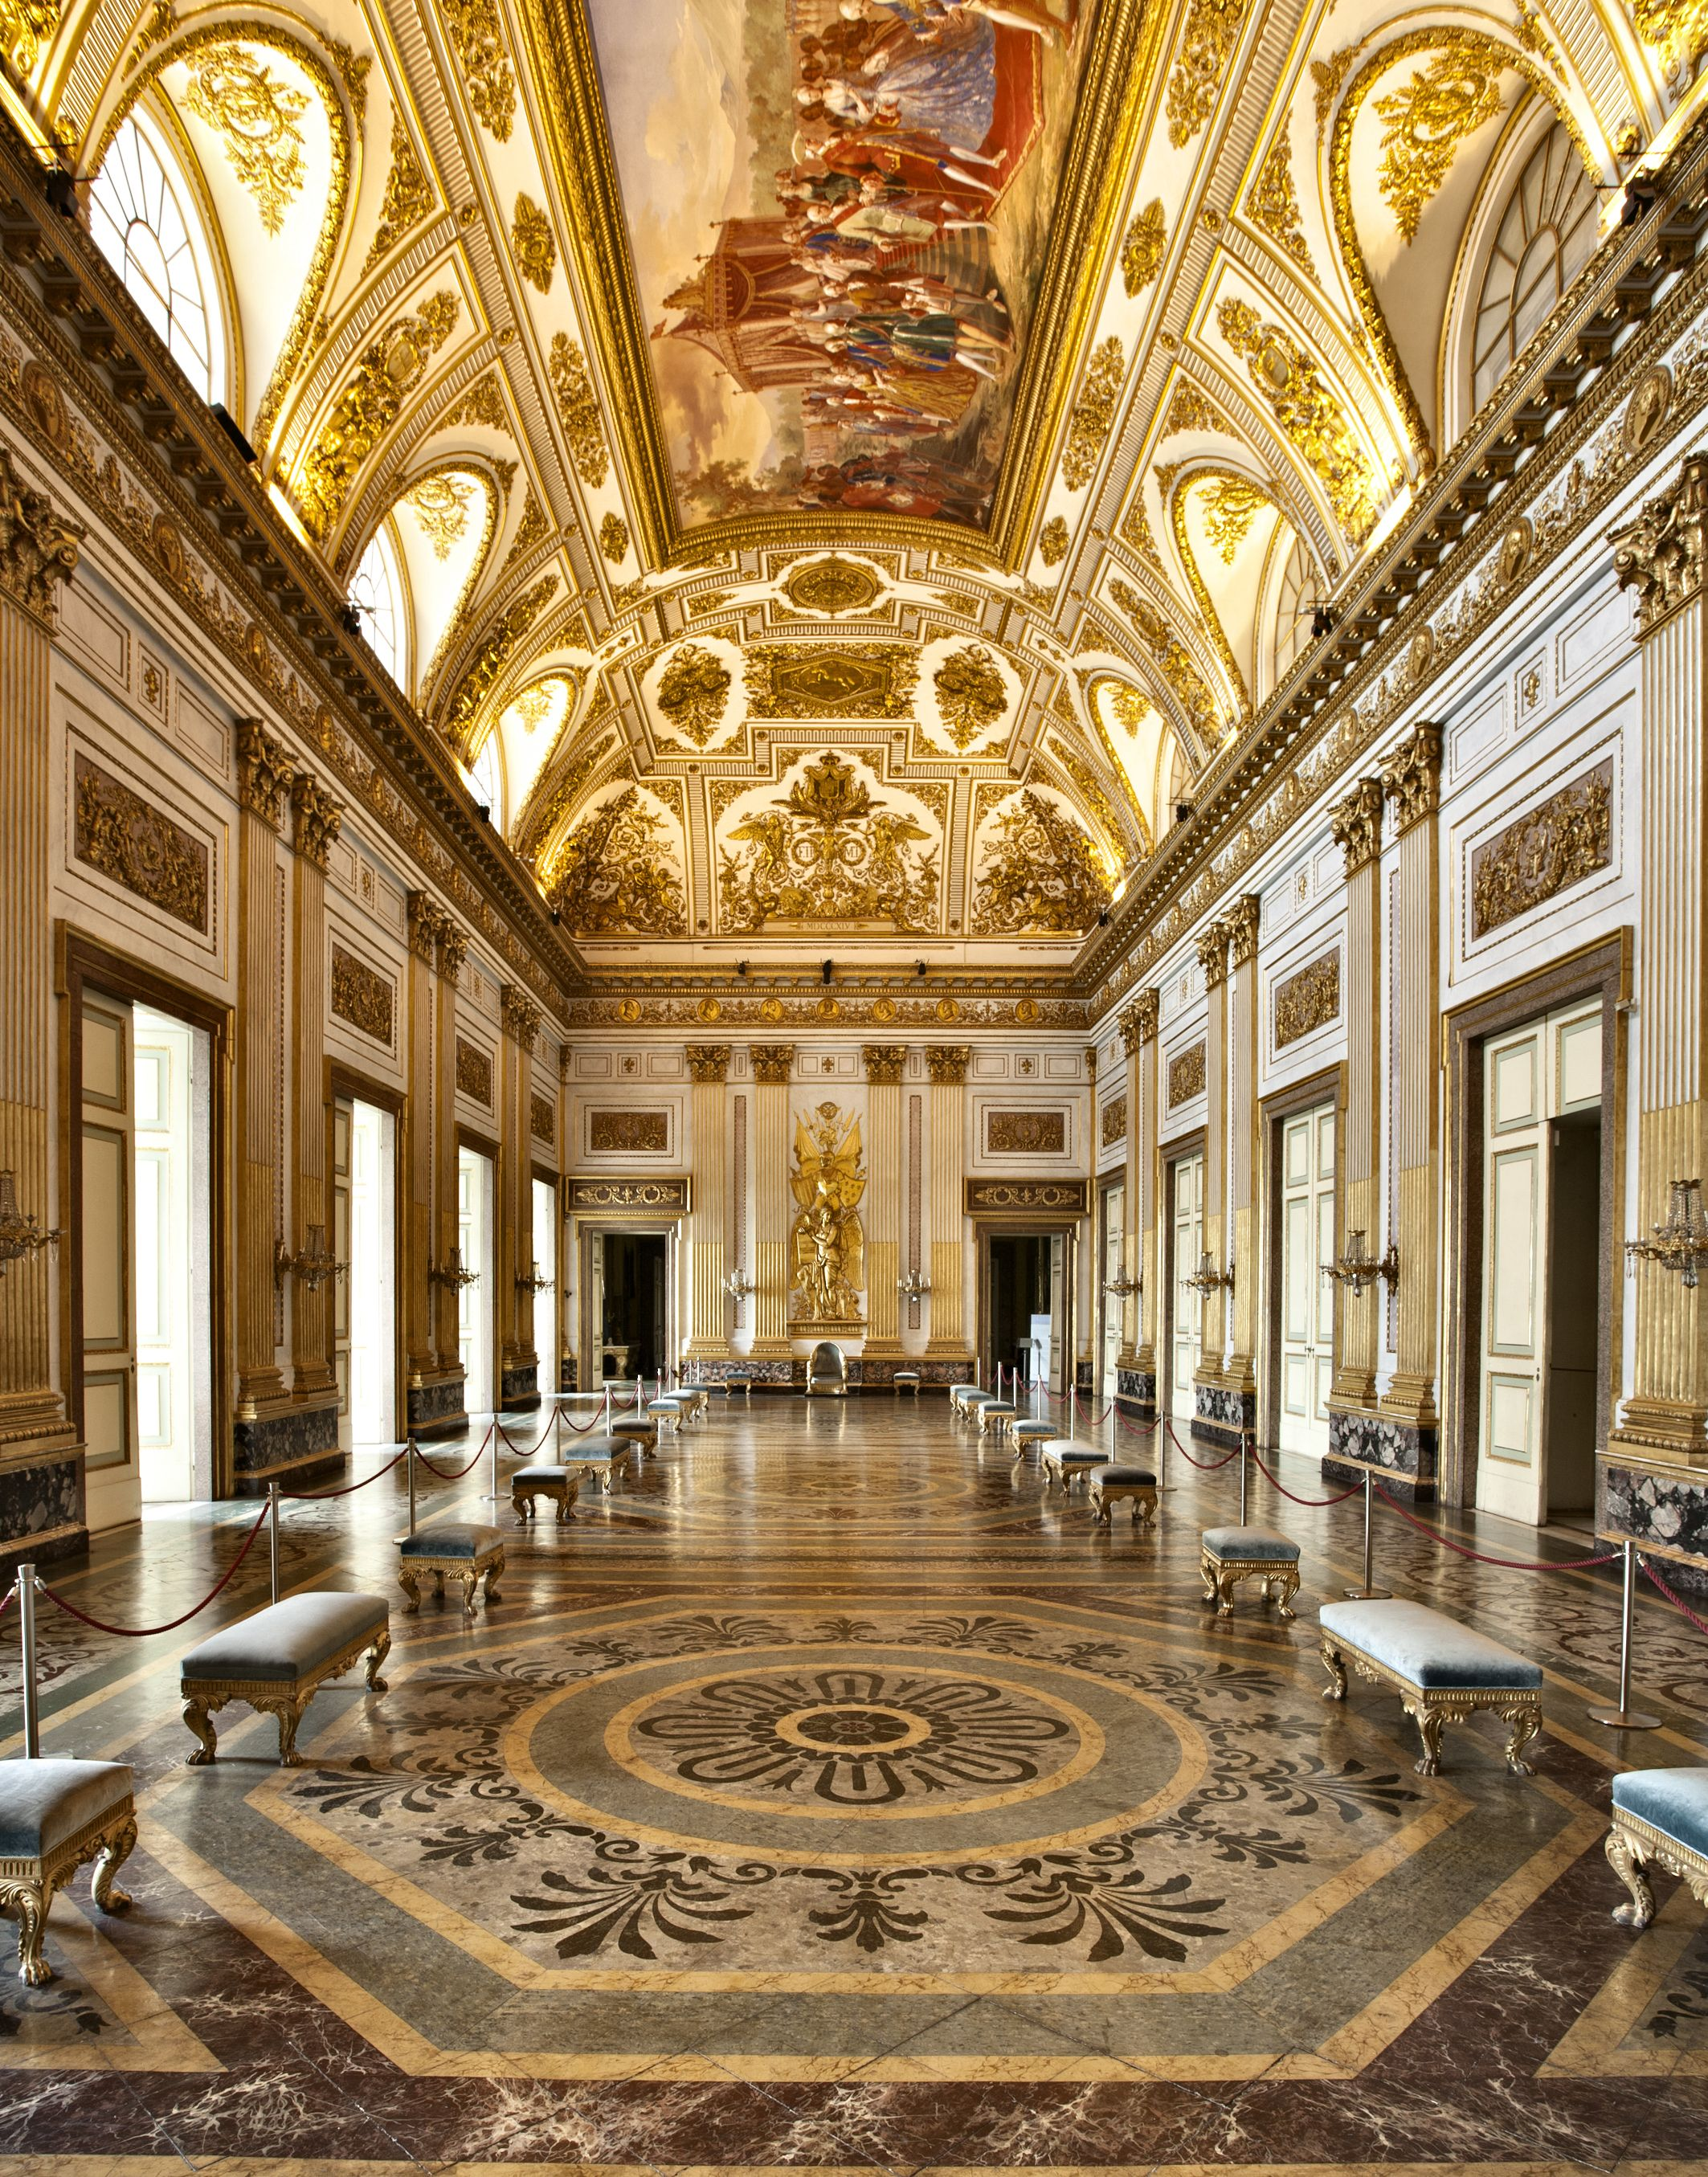 Royal palace caserta park waterfall of diana and actaeon wedding ideas pinterest palace - Interior designer caserta ...